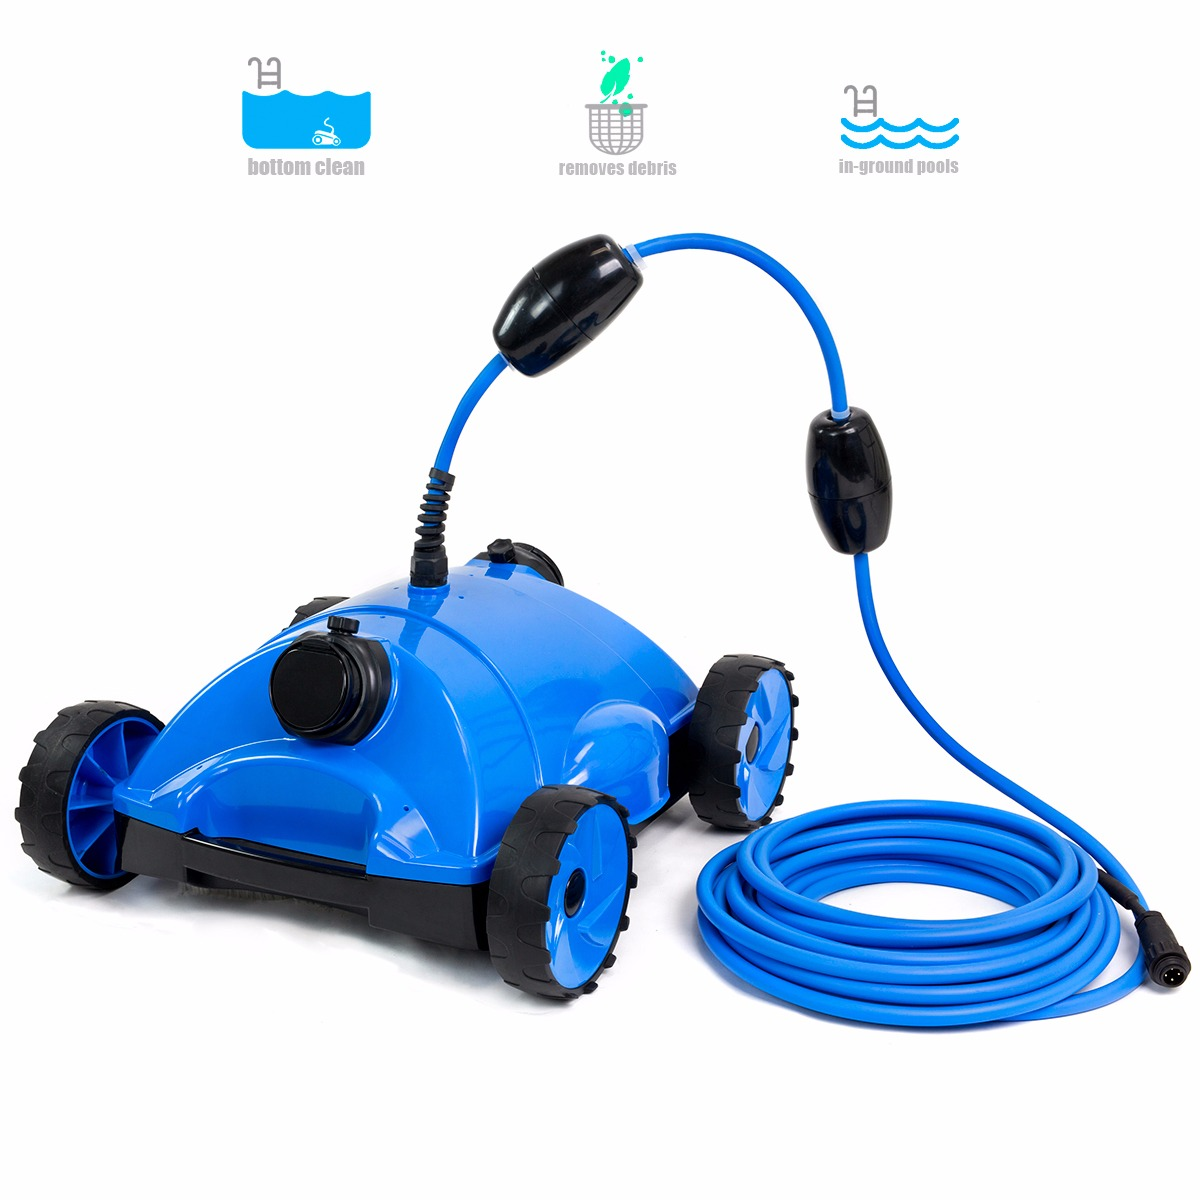 XtremepowerUS Aboveground Automatic Pool Cleaner Robot